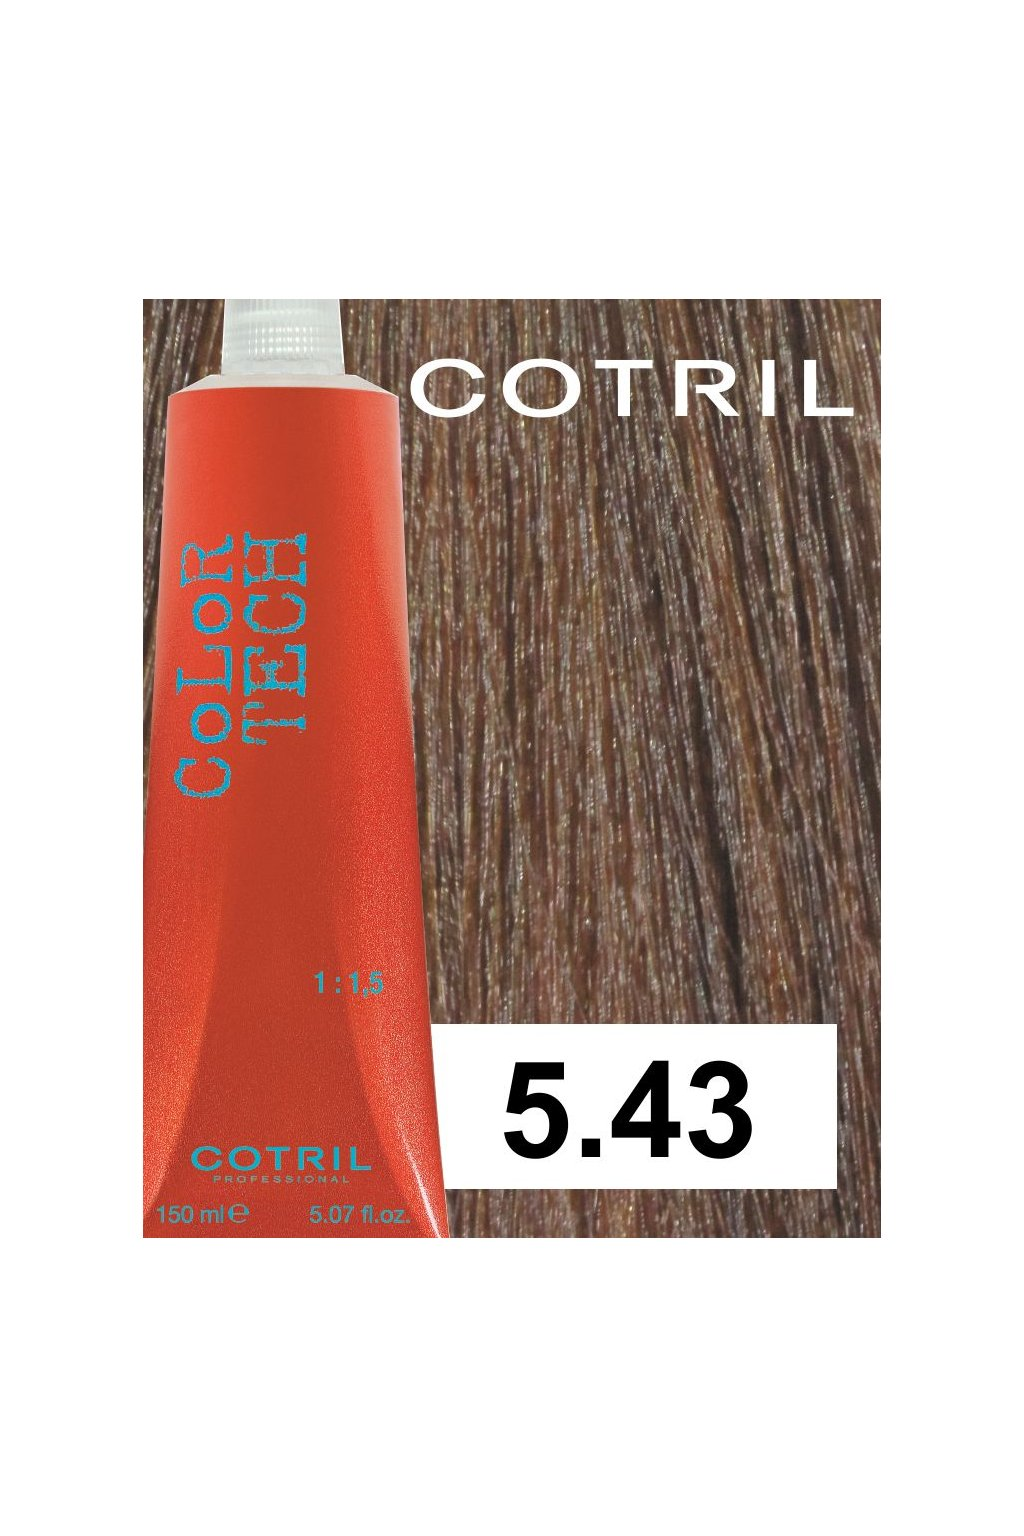 5 43 ct cotril